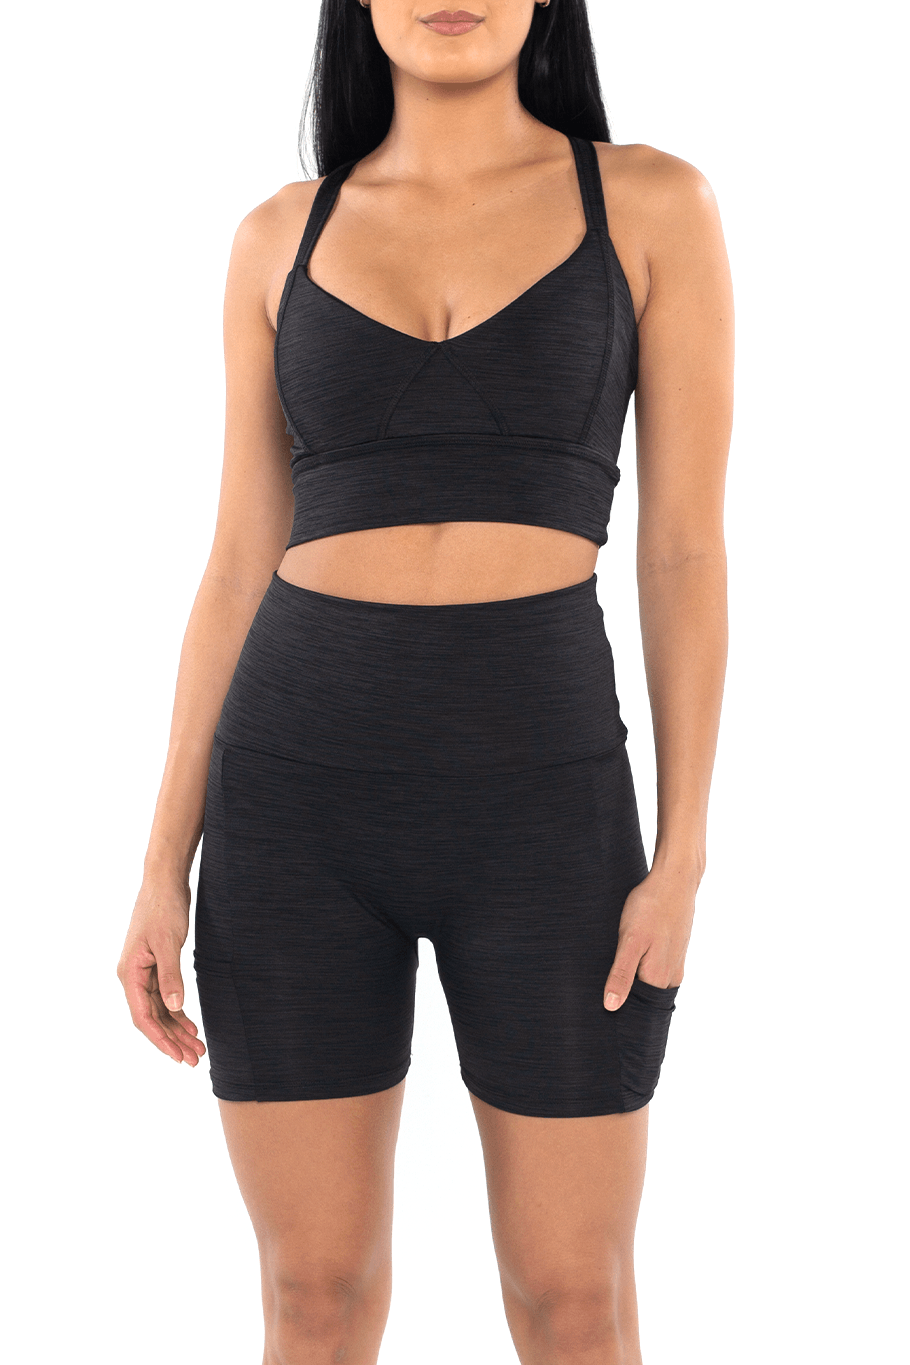 Shore Movement Sports Bra - Heather Black